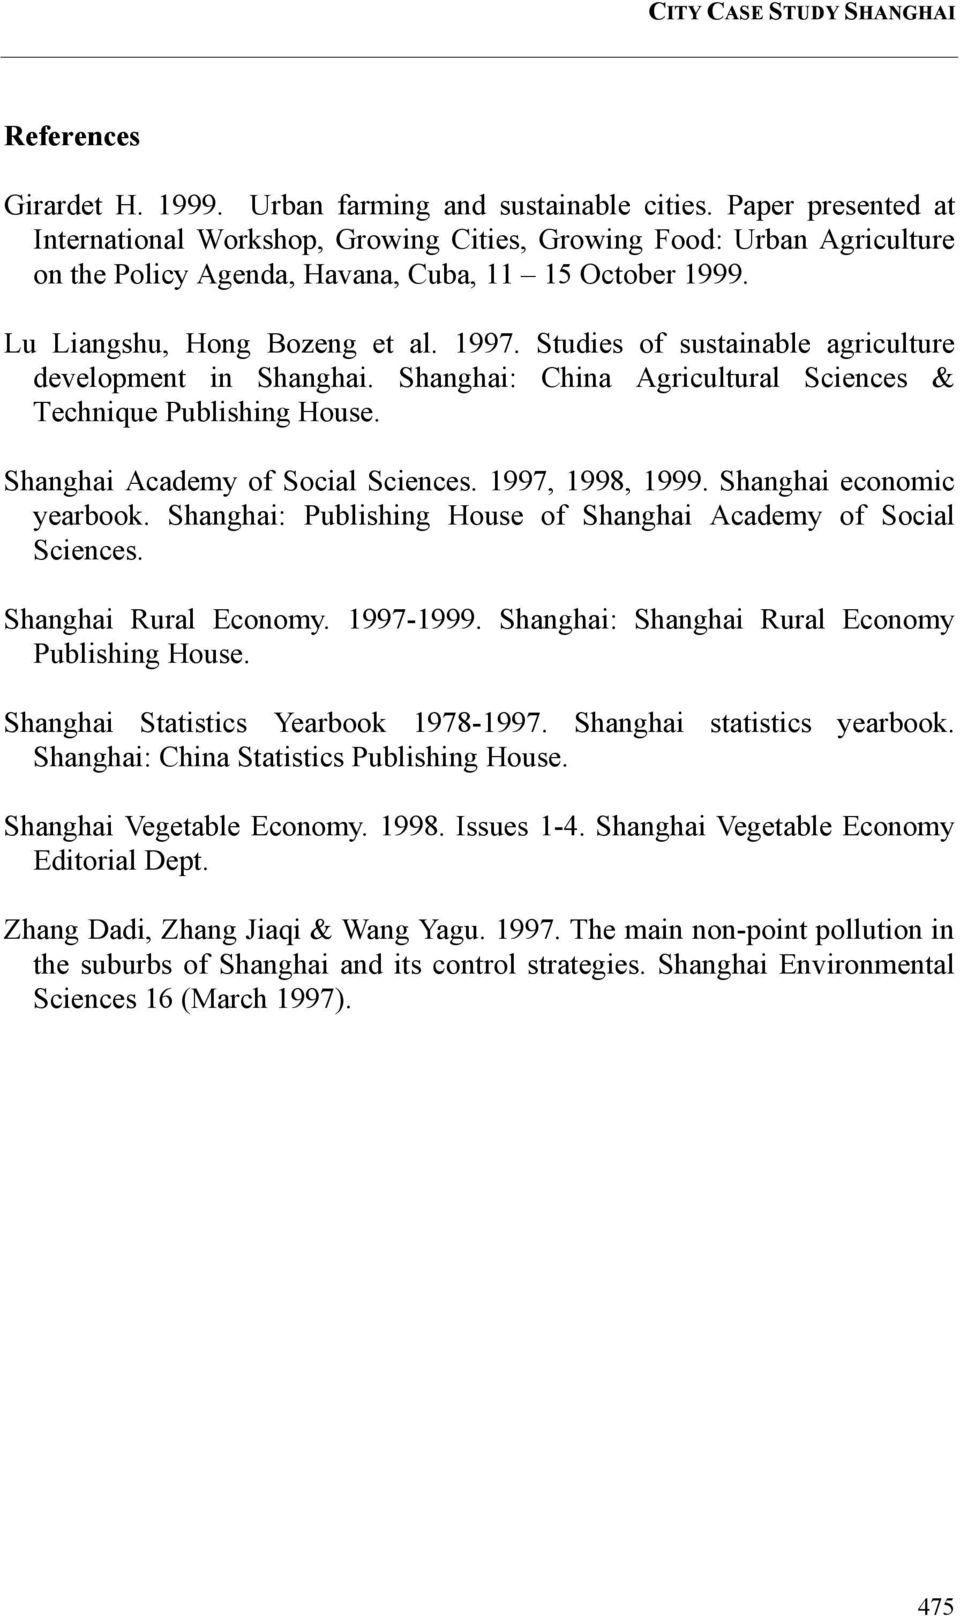 Studies of sustainable agriculture development in Shanghai. Shanghai: China Agricultural Sciences & Technique Publishing House. Shanghai Academy of Social Sciences. 1997, 1998, 1999.